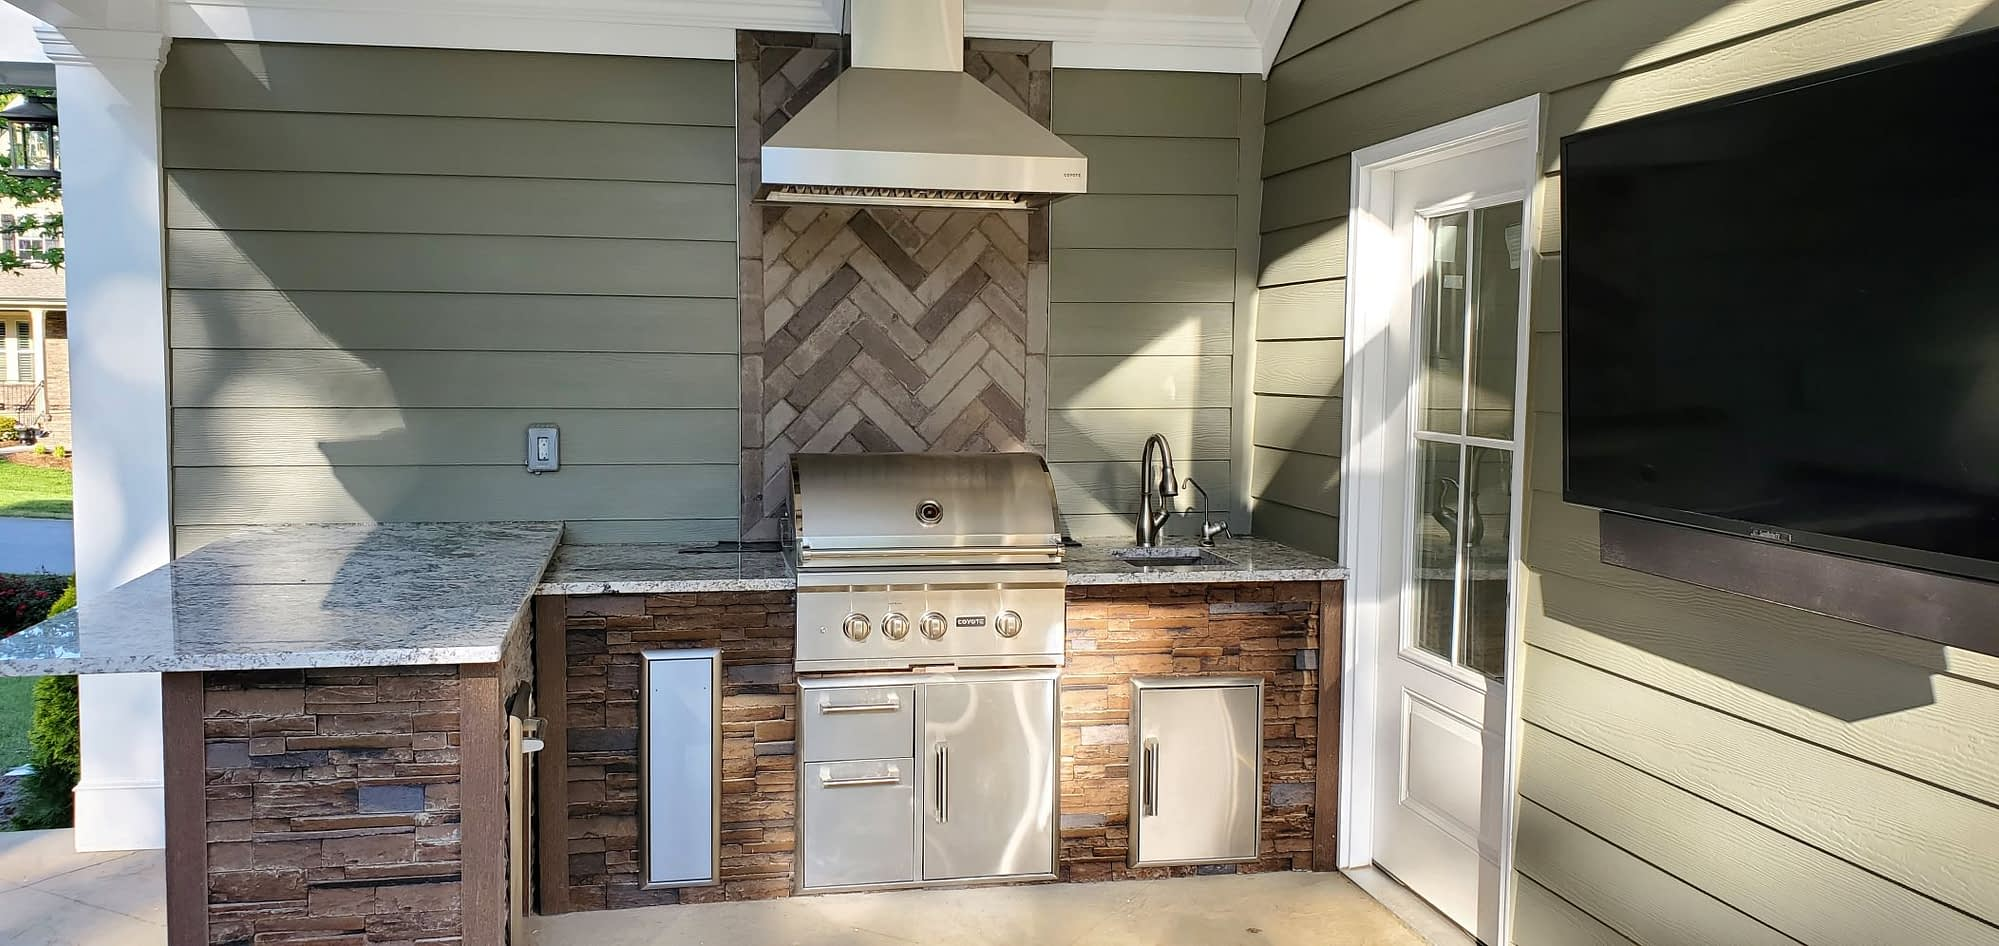 outdoor kitchen grill with hood (1)